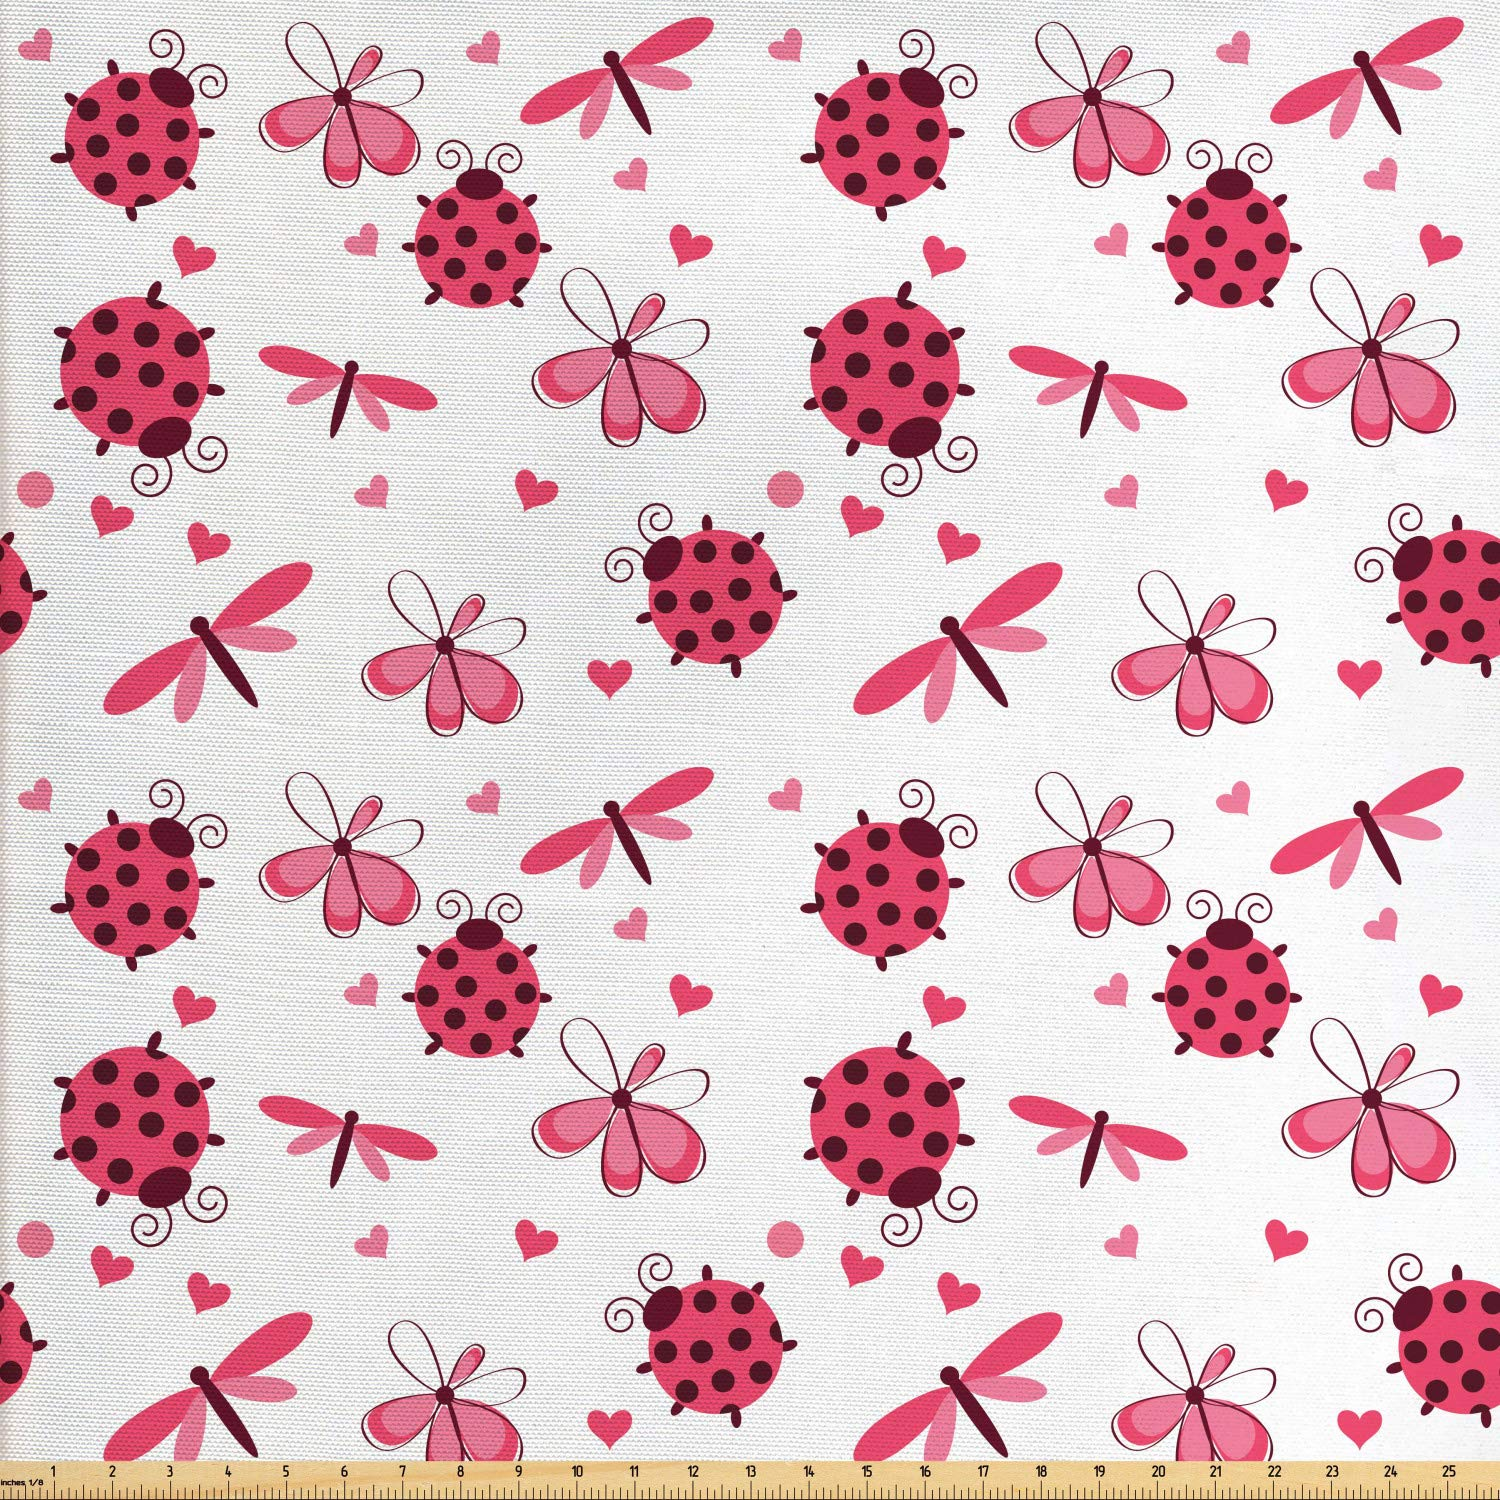 Ambesonne Ladybugs Fabric by The Yard, Domed Back Round Ladybugs with Hearts Flowers Dragonflies Romantic Wings Pattern, Decorative Fabric for Upholstery and Home Accents, 1 Yard, Red White